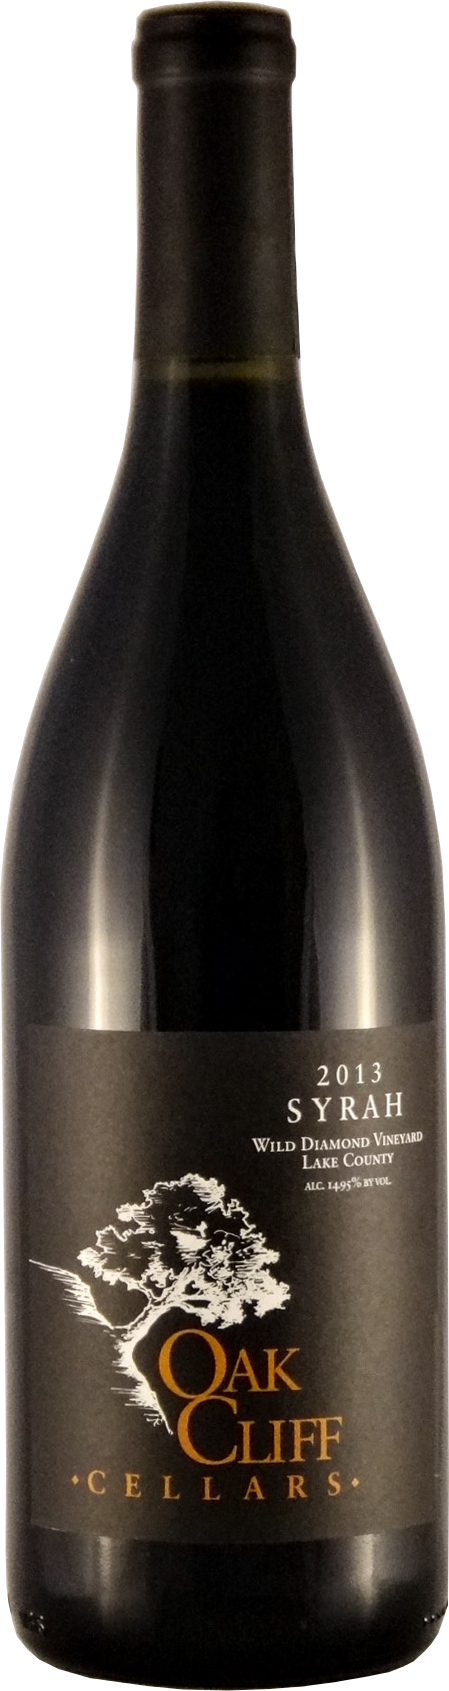 2013 Oak Cliff Cellars Wild Diamond Syrah - Qorkz